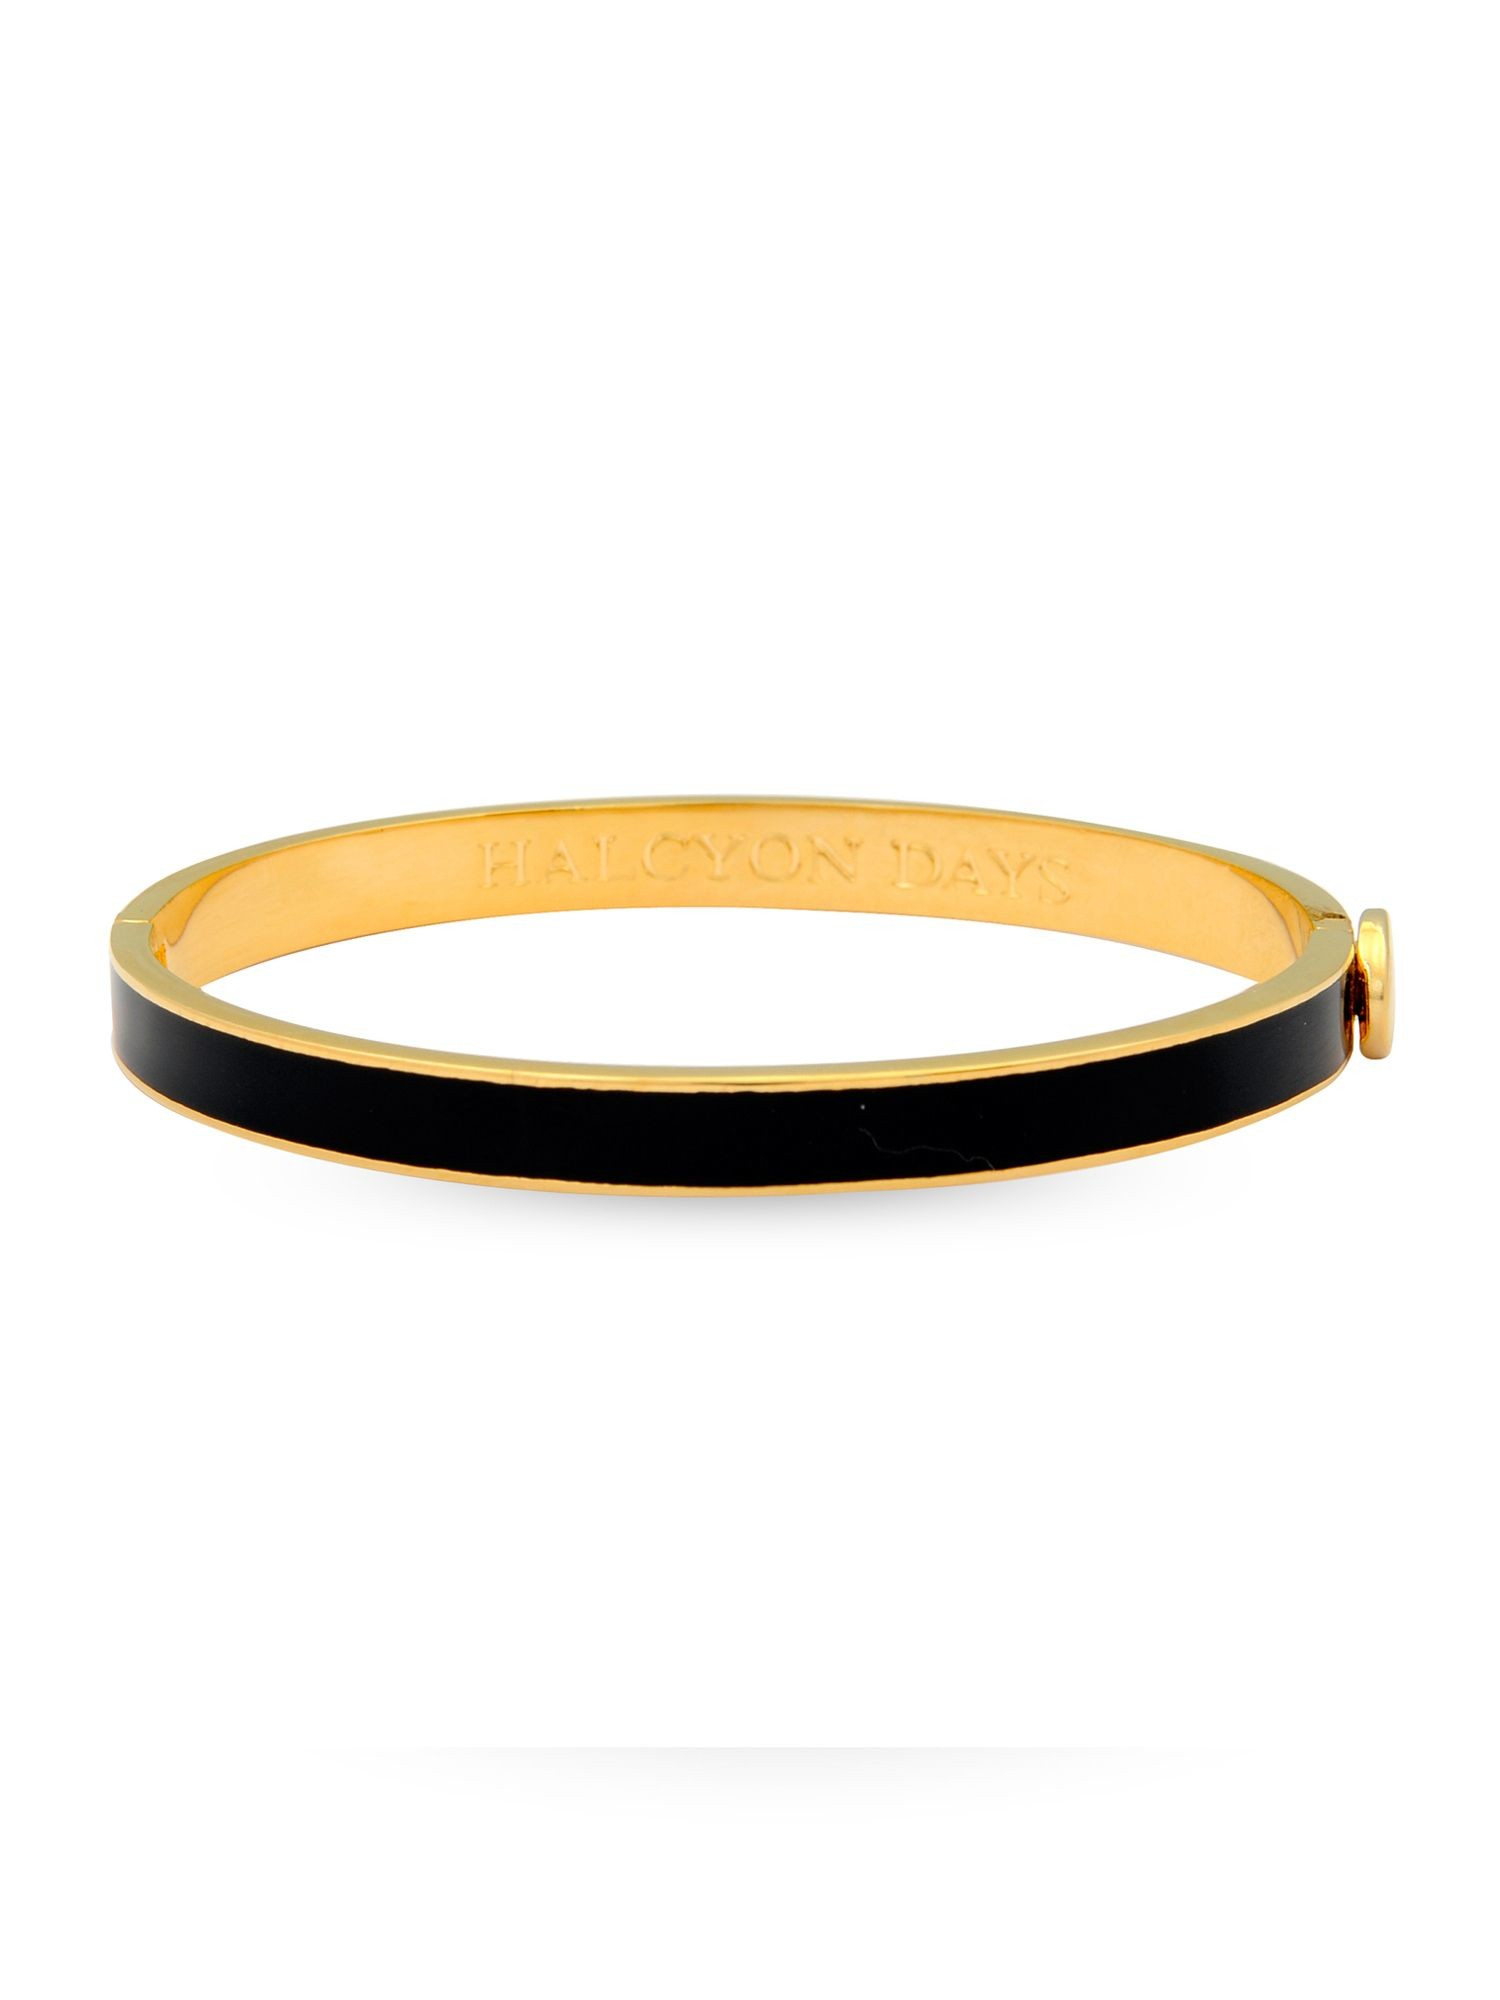 6mm Skinny Plain Bangle Black & Gold